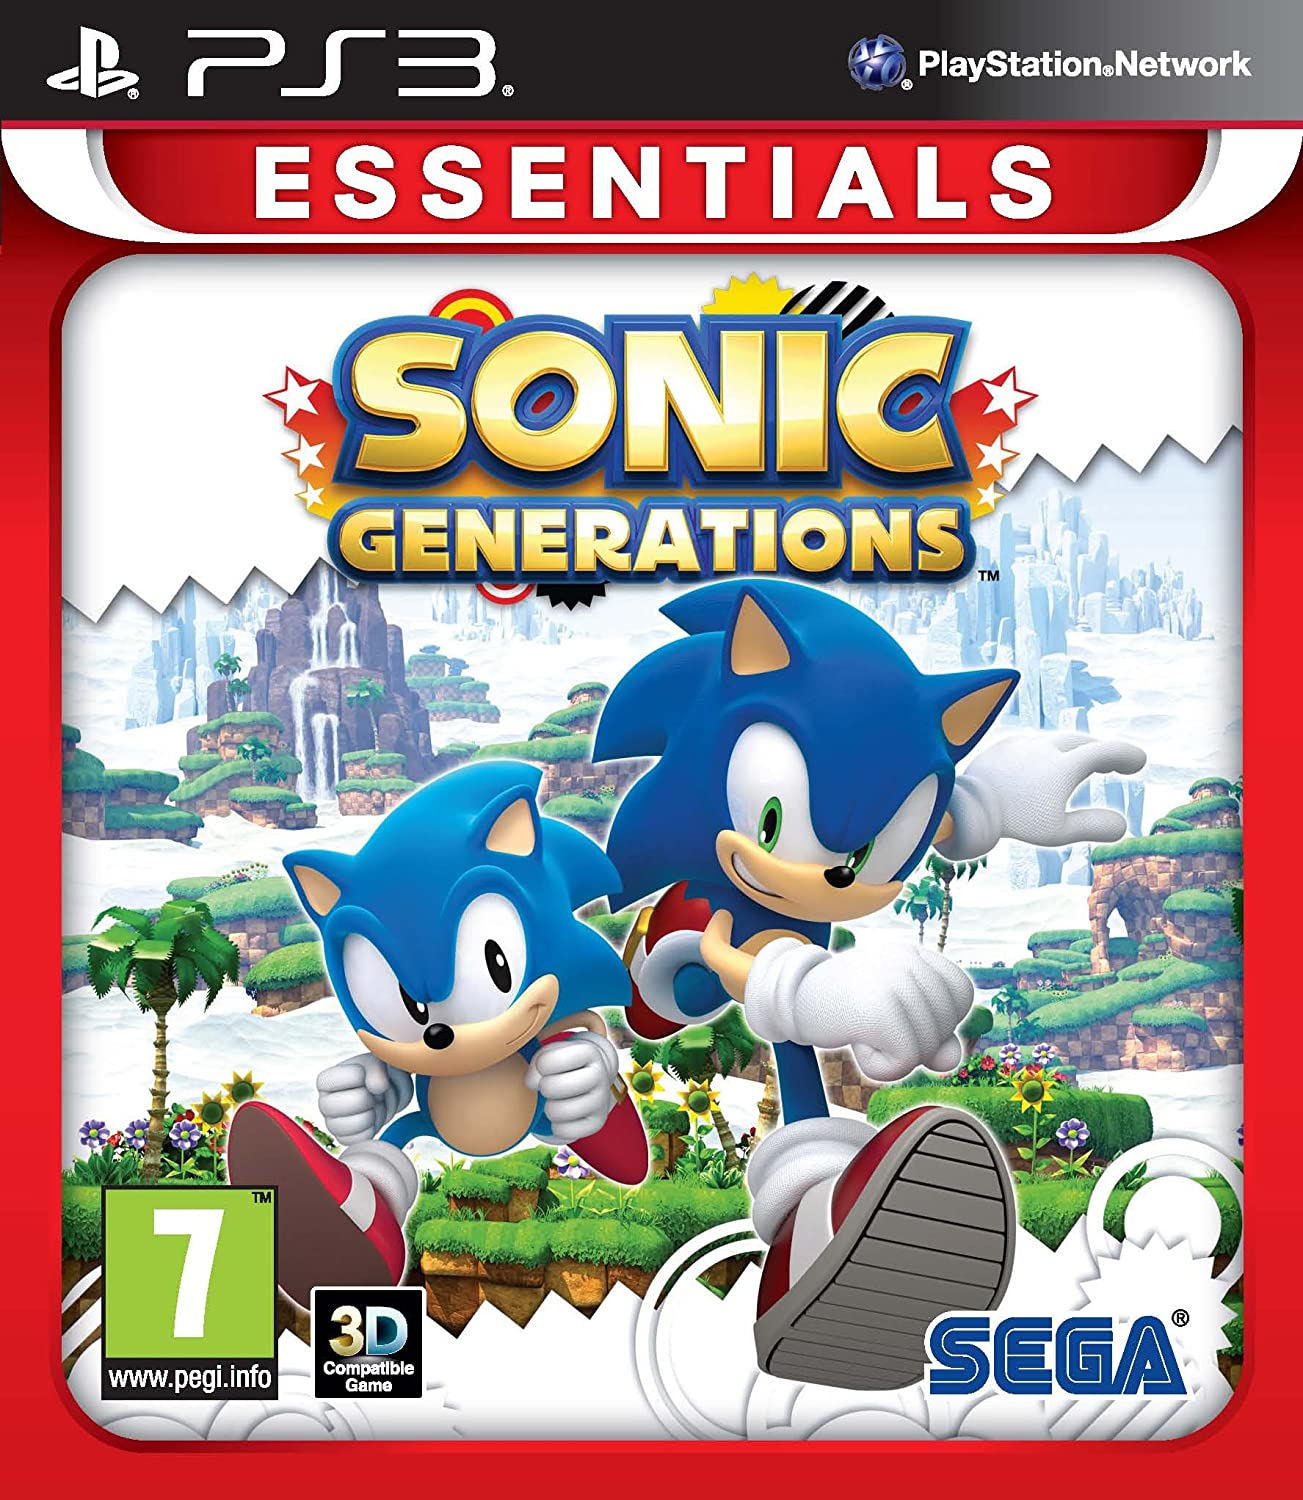 Sonic Arlington Mall Generations: low-pricing PS3 Essentials